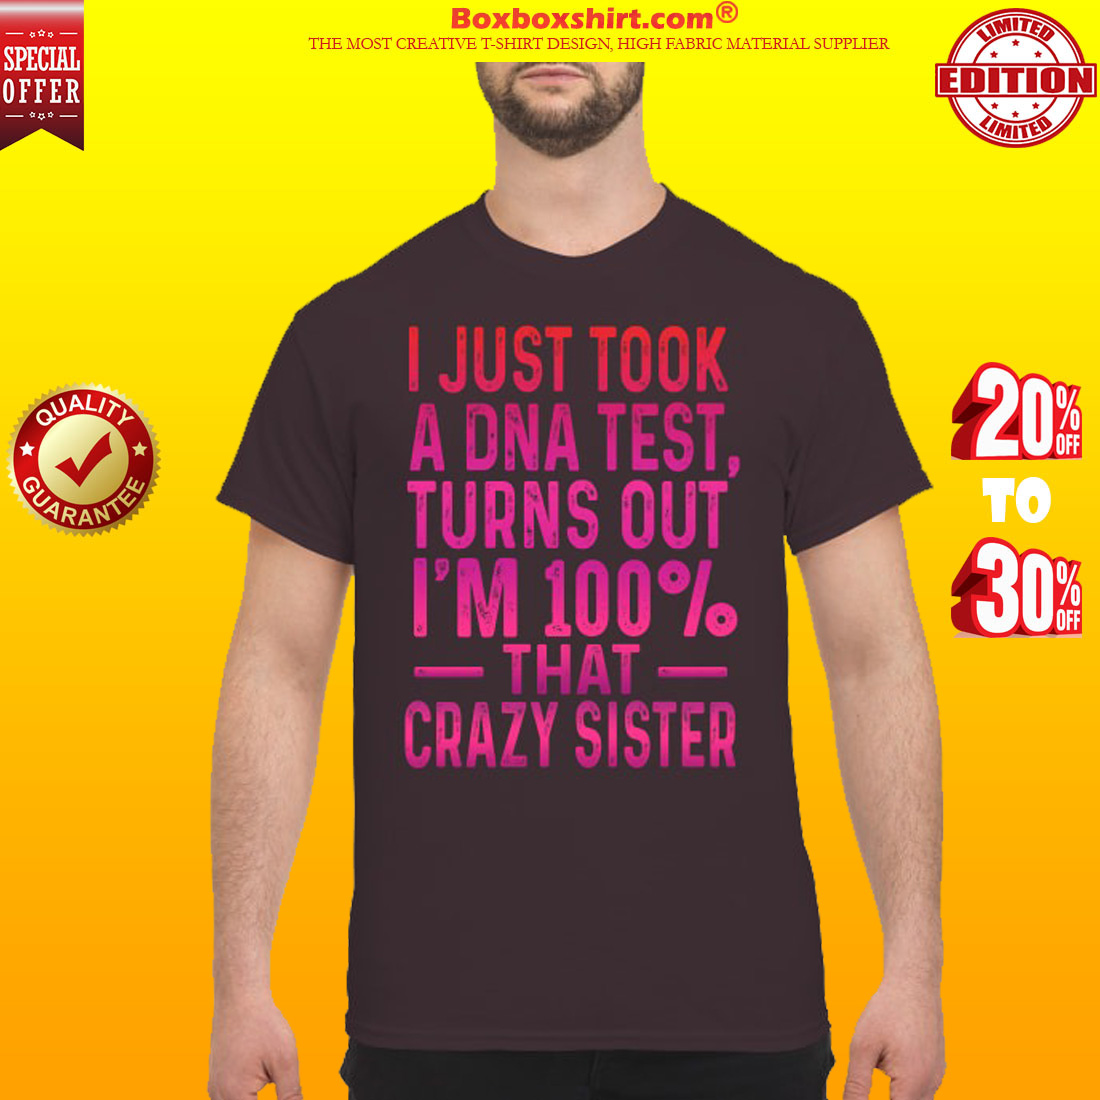 I just took a DNA test turns out I'm 100% that crazy sister classic shirt